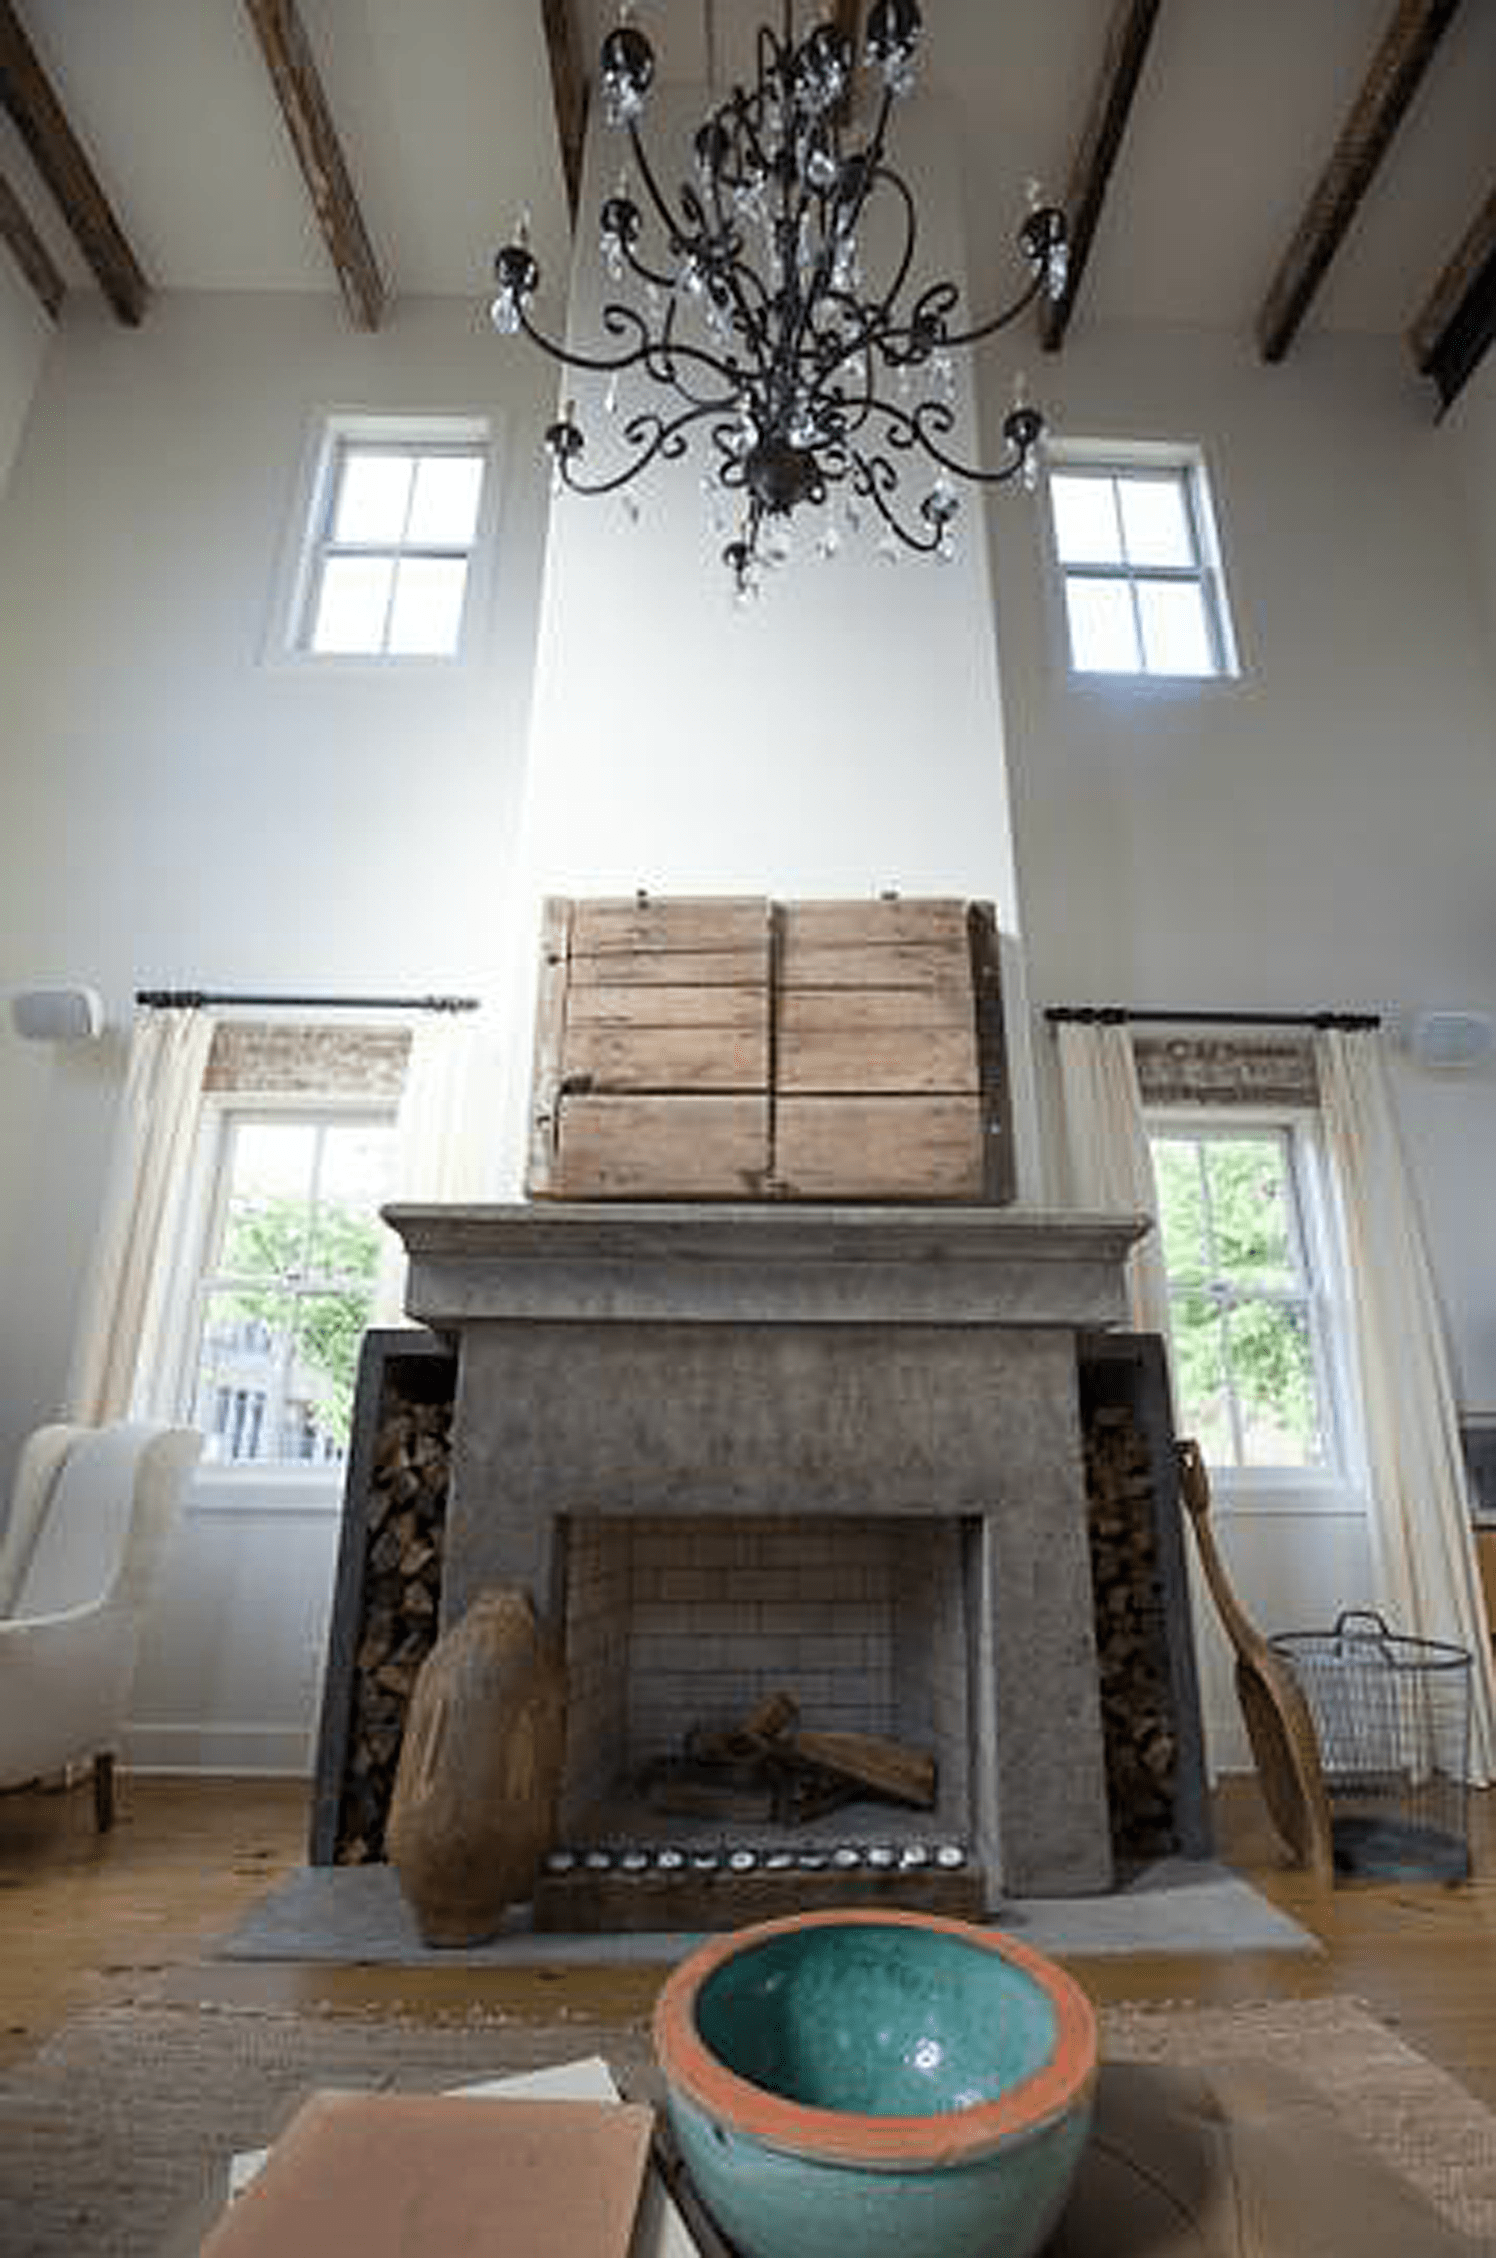 For this client we were asked to recreate a 250 year old mantle piece from Italy. The original was made of stone, so we went through an extensive process of developing a concrete mix that looked like the original. This was a challenging project, but in the end we were all quite pleased with the outcome.  #residential